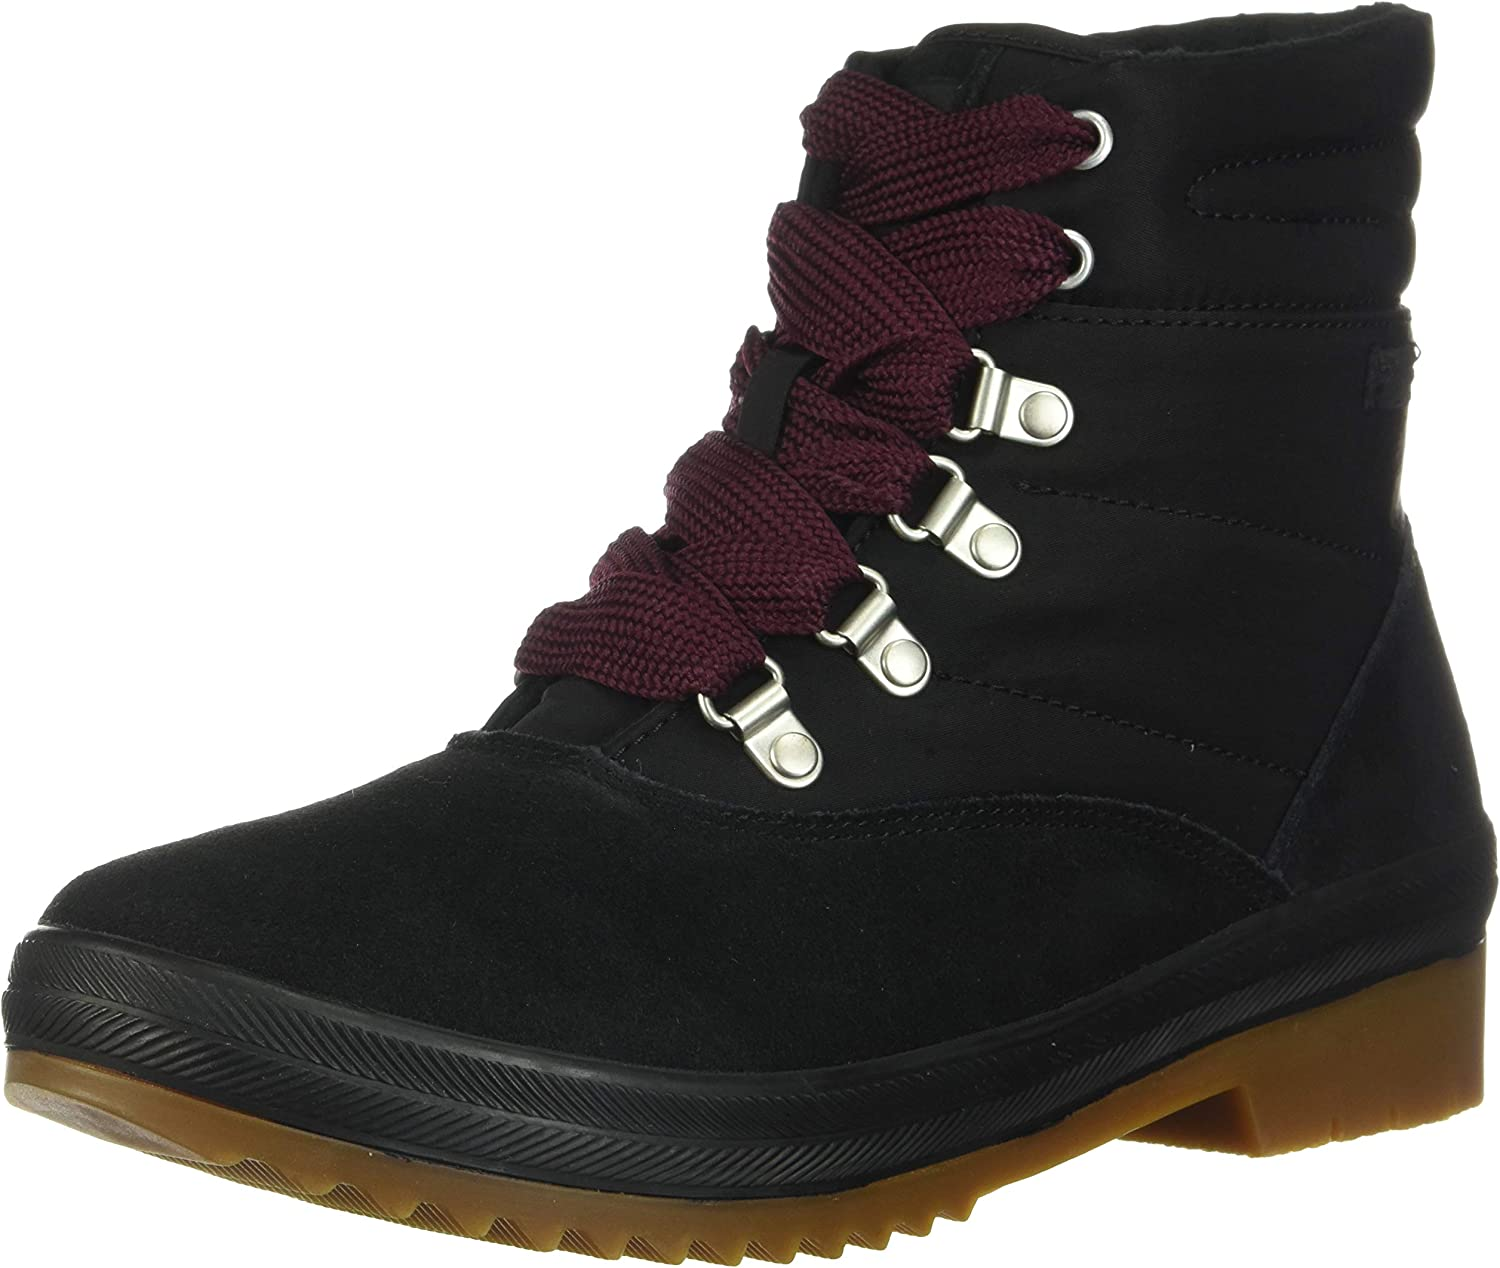 Keds Womens Camp Boot Suede + Nylon